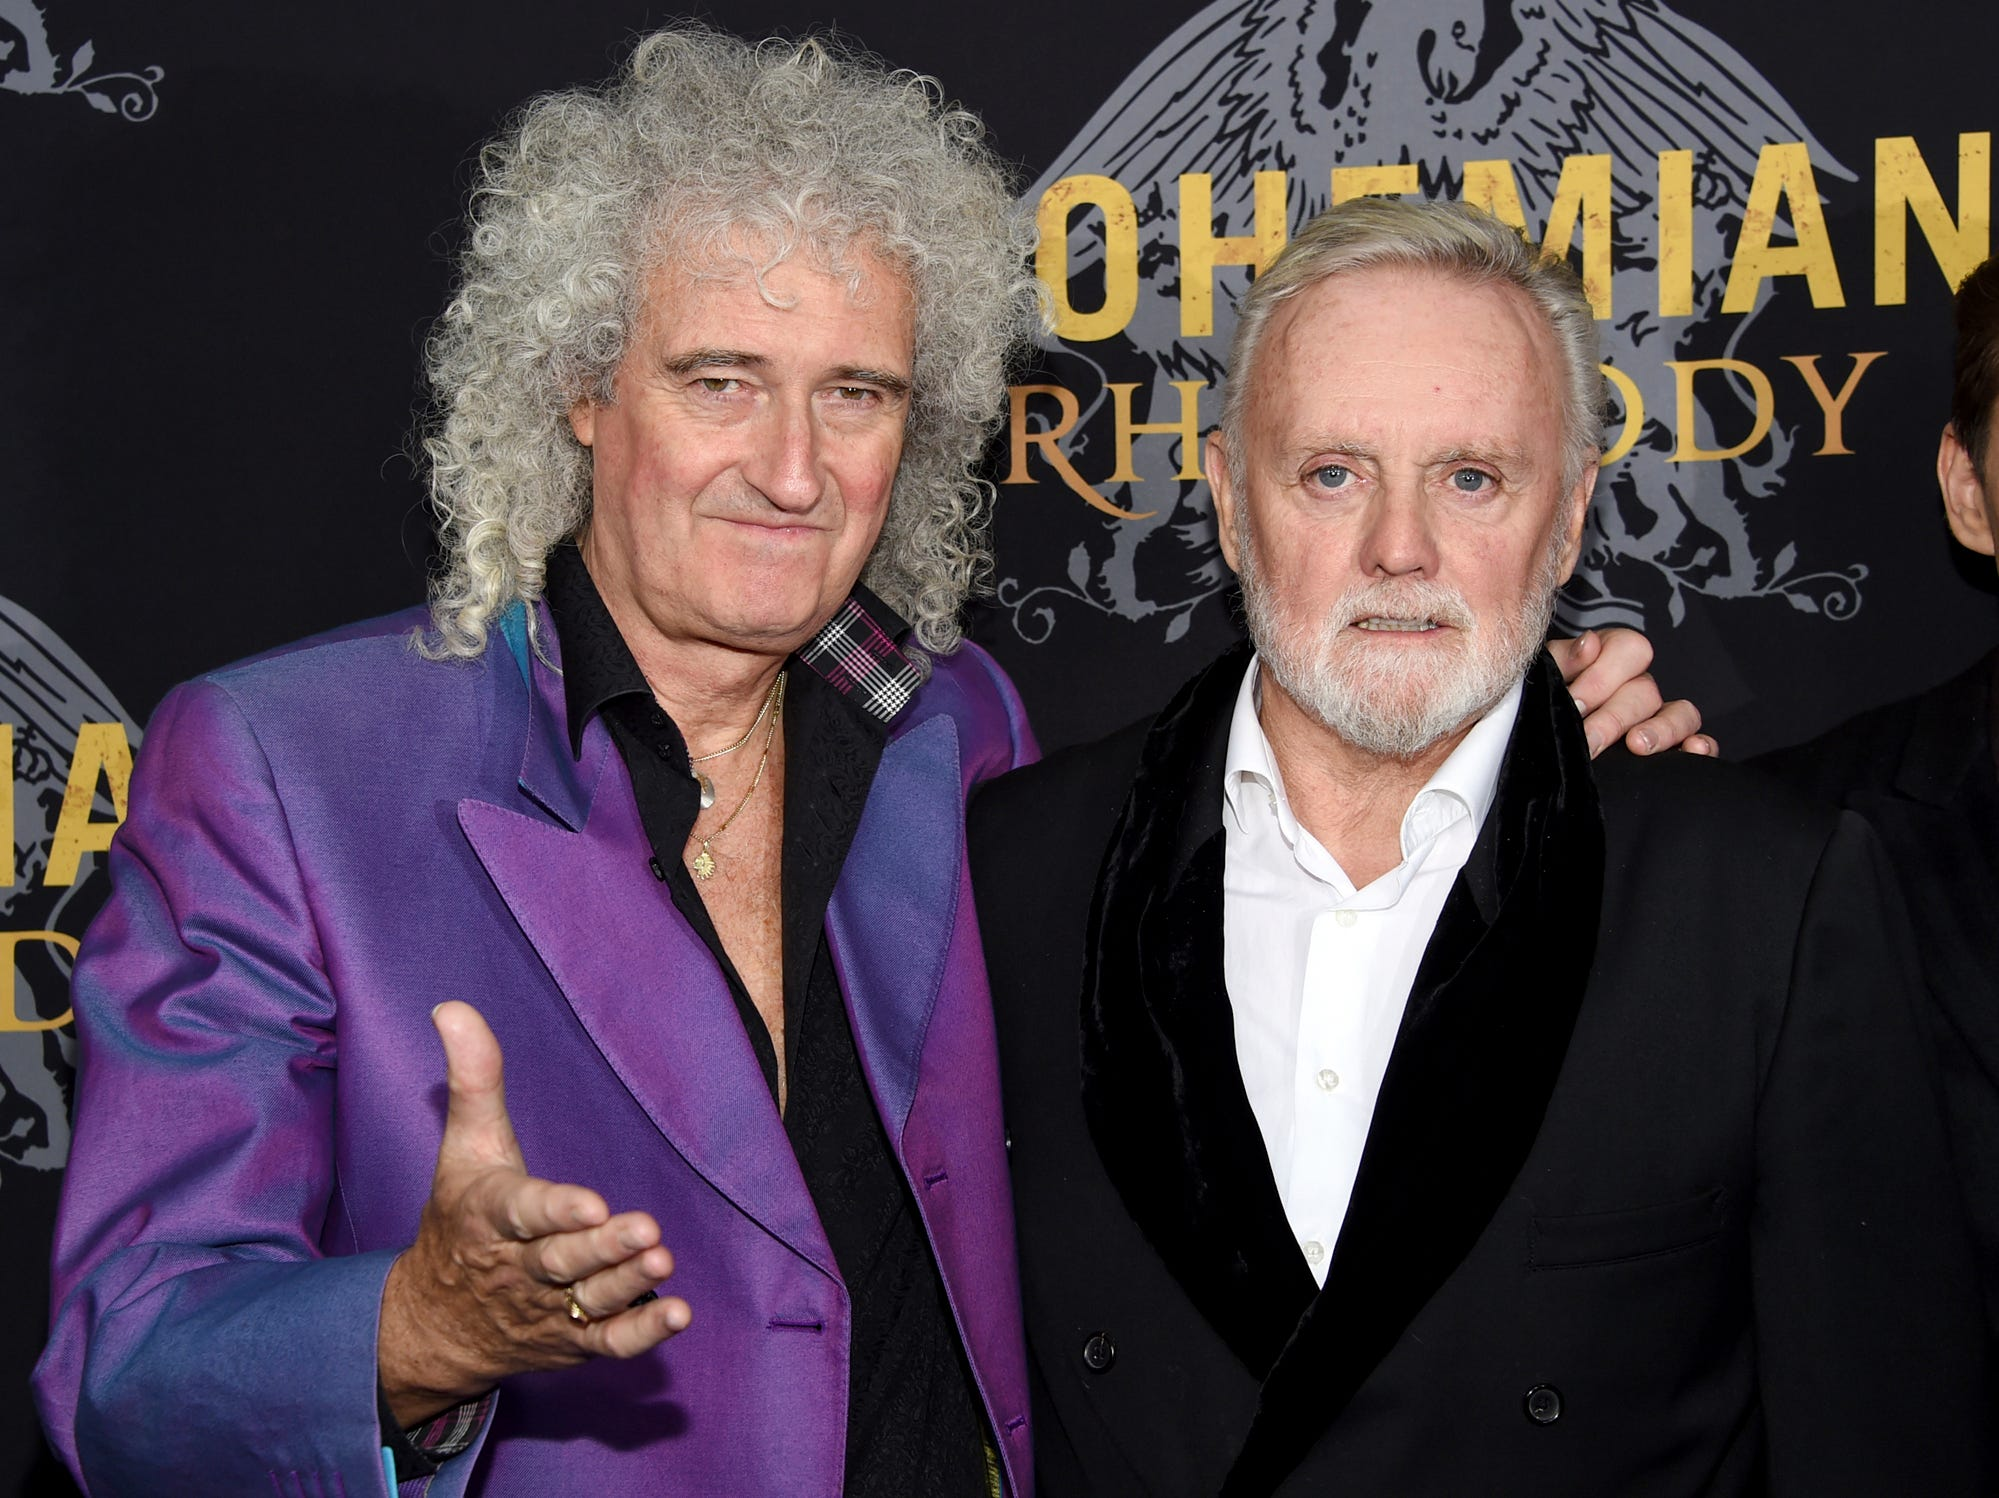 """Queen band members Brian May, left, and Roger Taylor attend the premiere of """"Bohemian Rhapsody"""" at The Paris Theatre on Tuesday, Oct. 30, 2018, in New York. (Photo by Evan Agostini/Invision/AP)"""